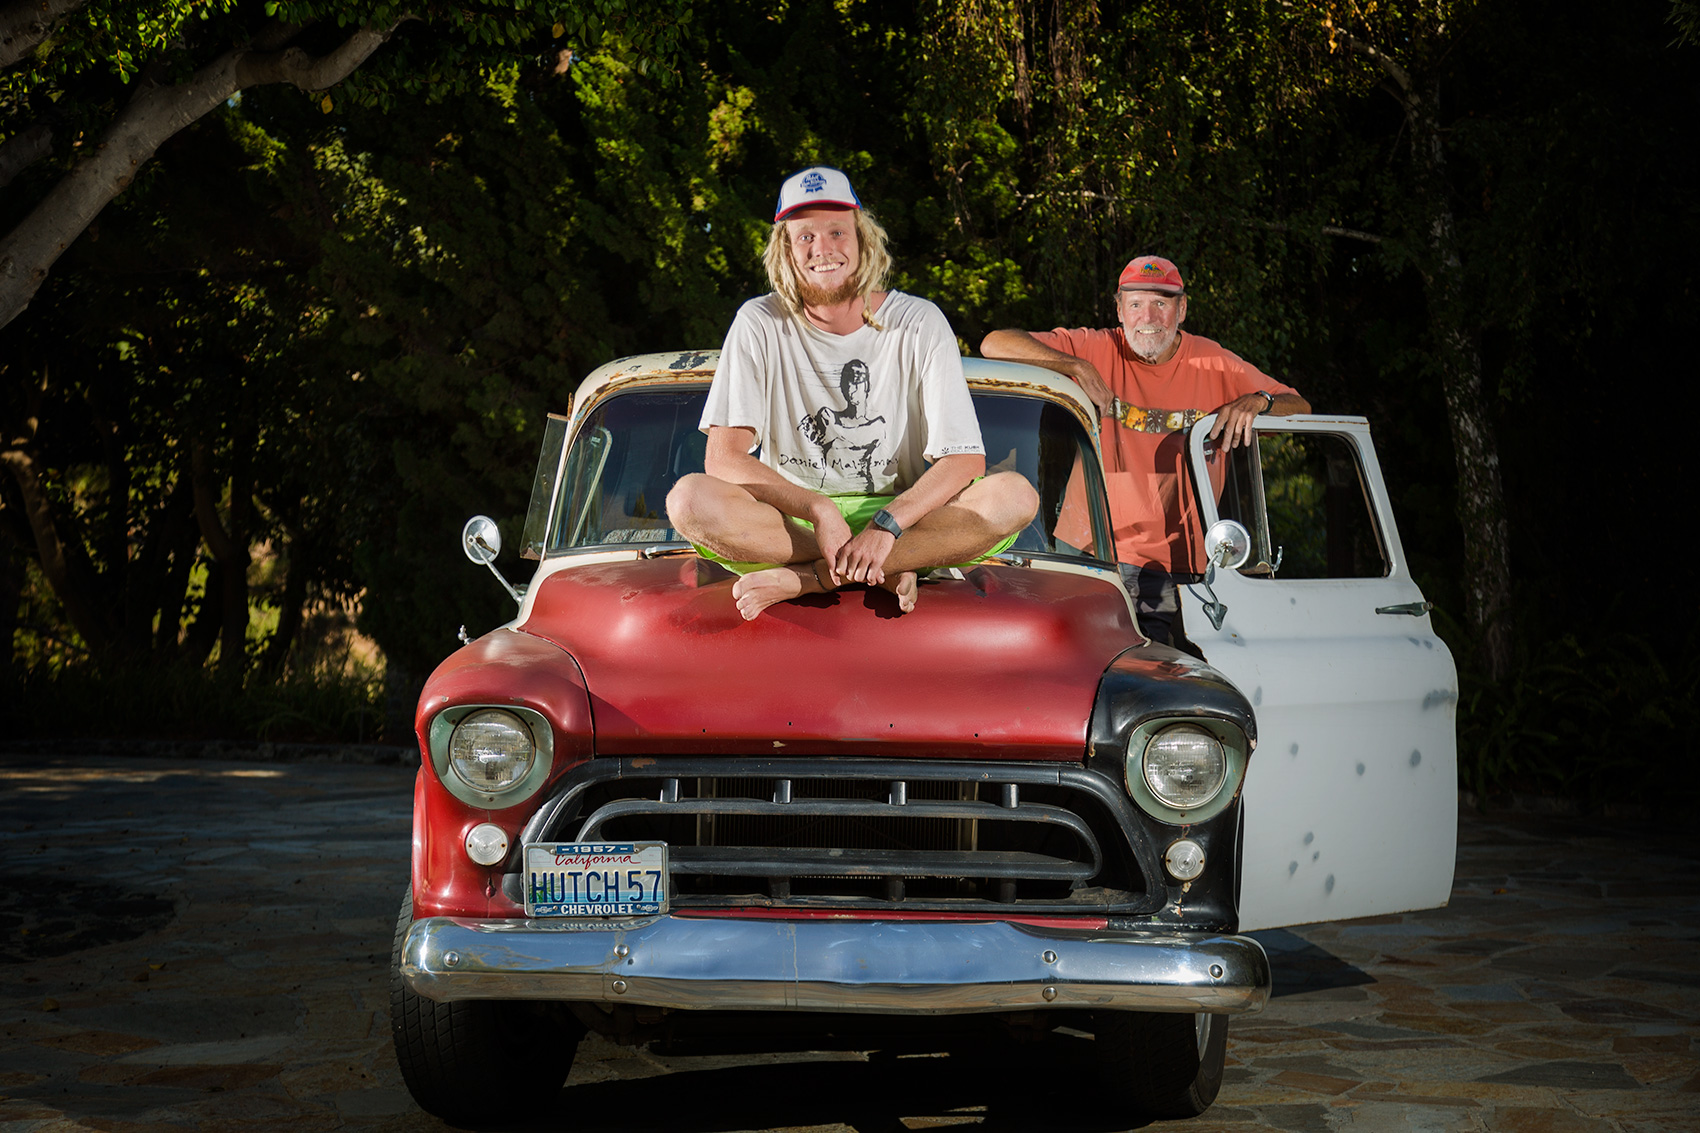 Malibu Father and Son with vintage truck